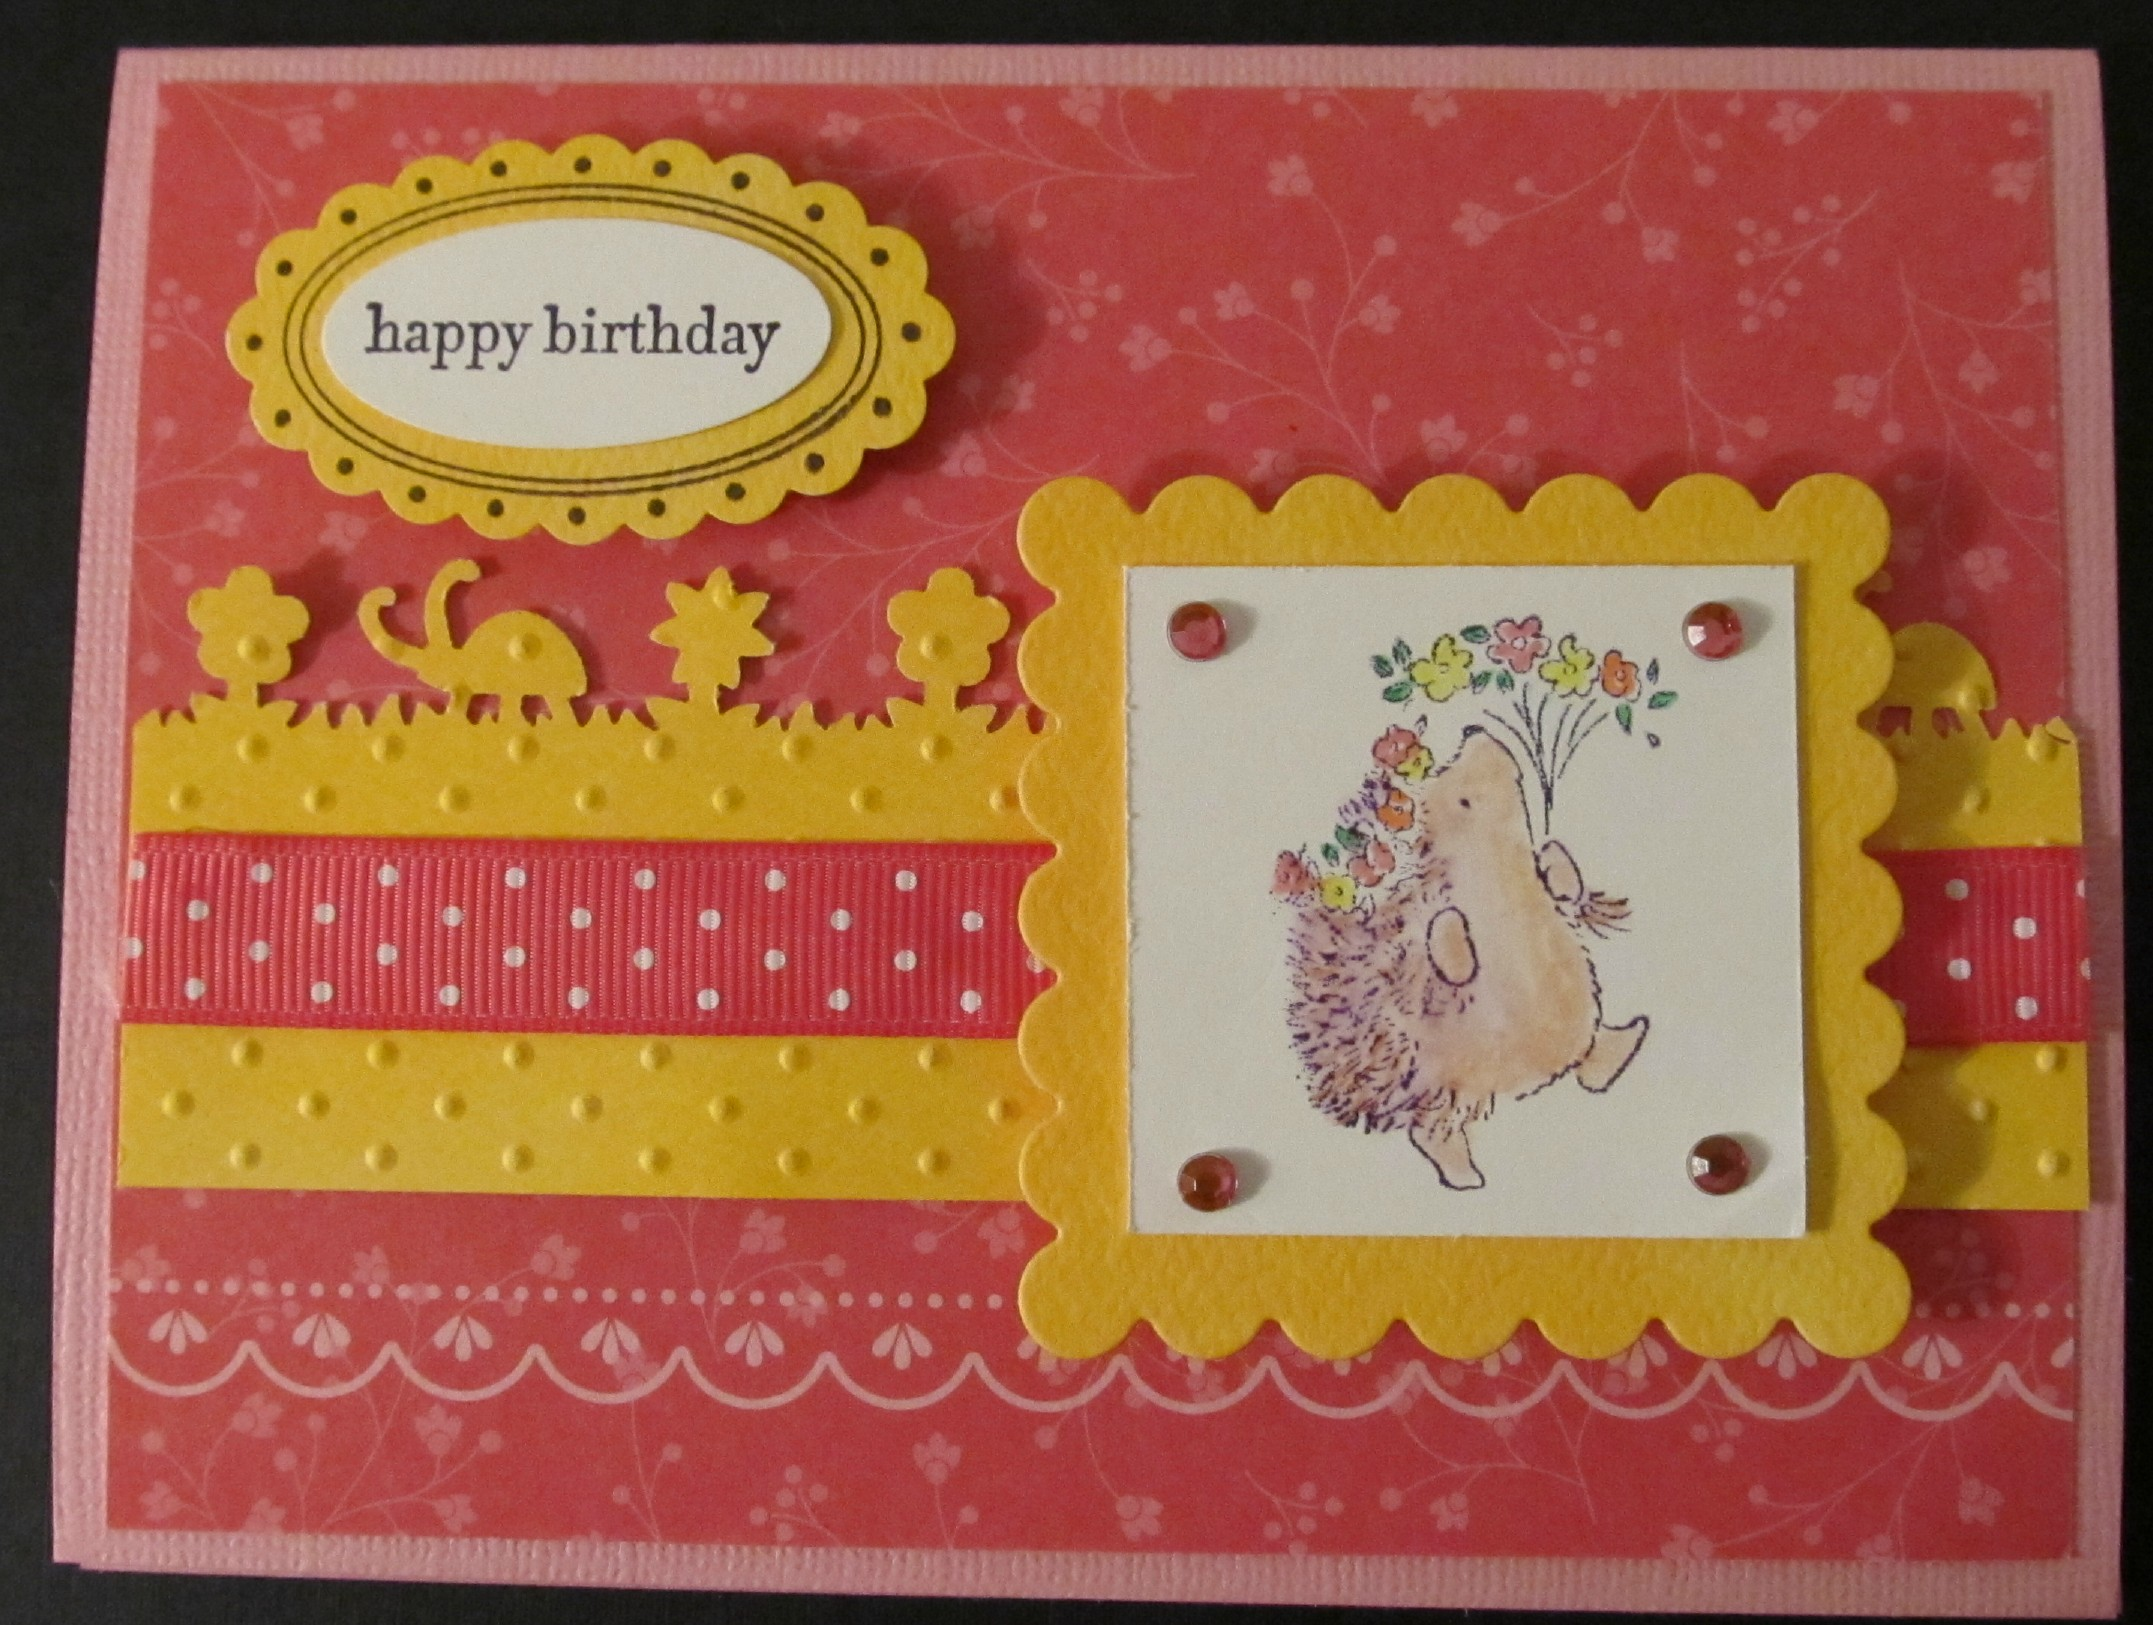 Happy birthday butterfly card allfreepapercrafts com - Penny Black Rubber Stamps Hedgehog Birthday Card